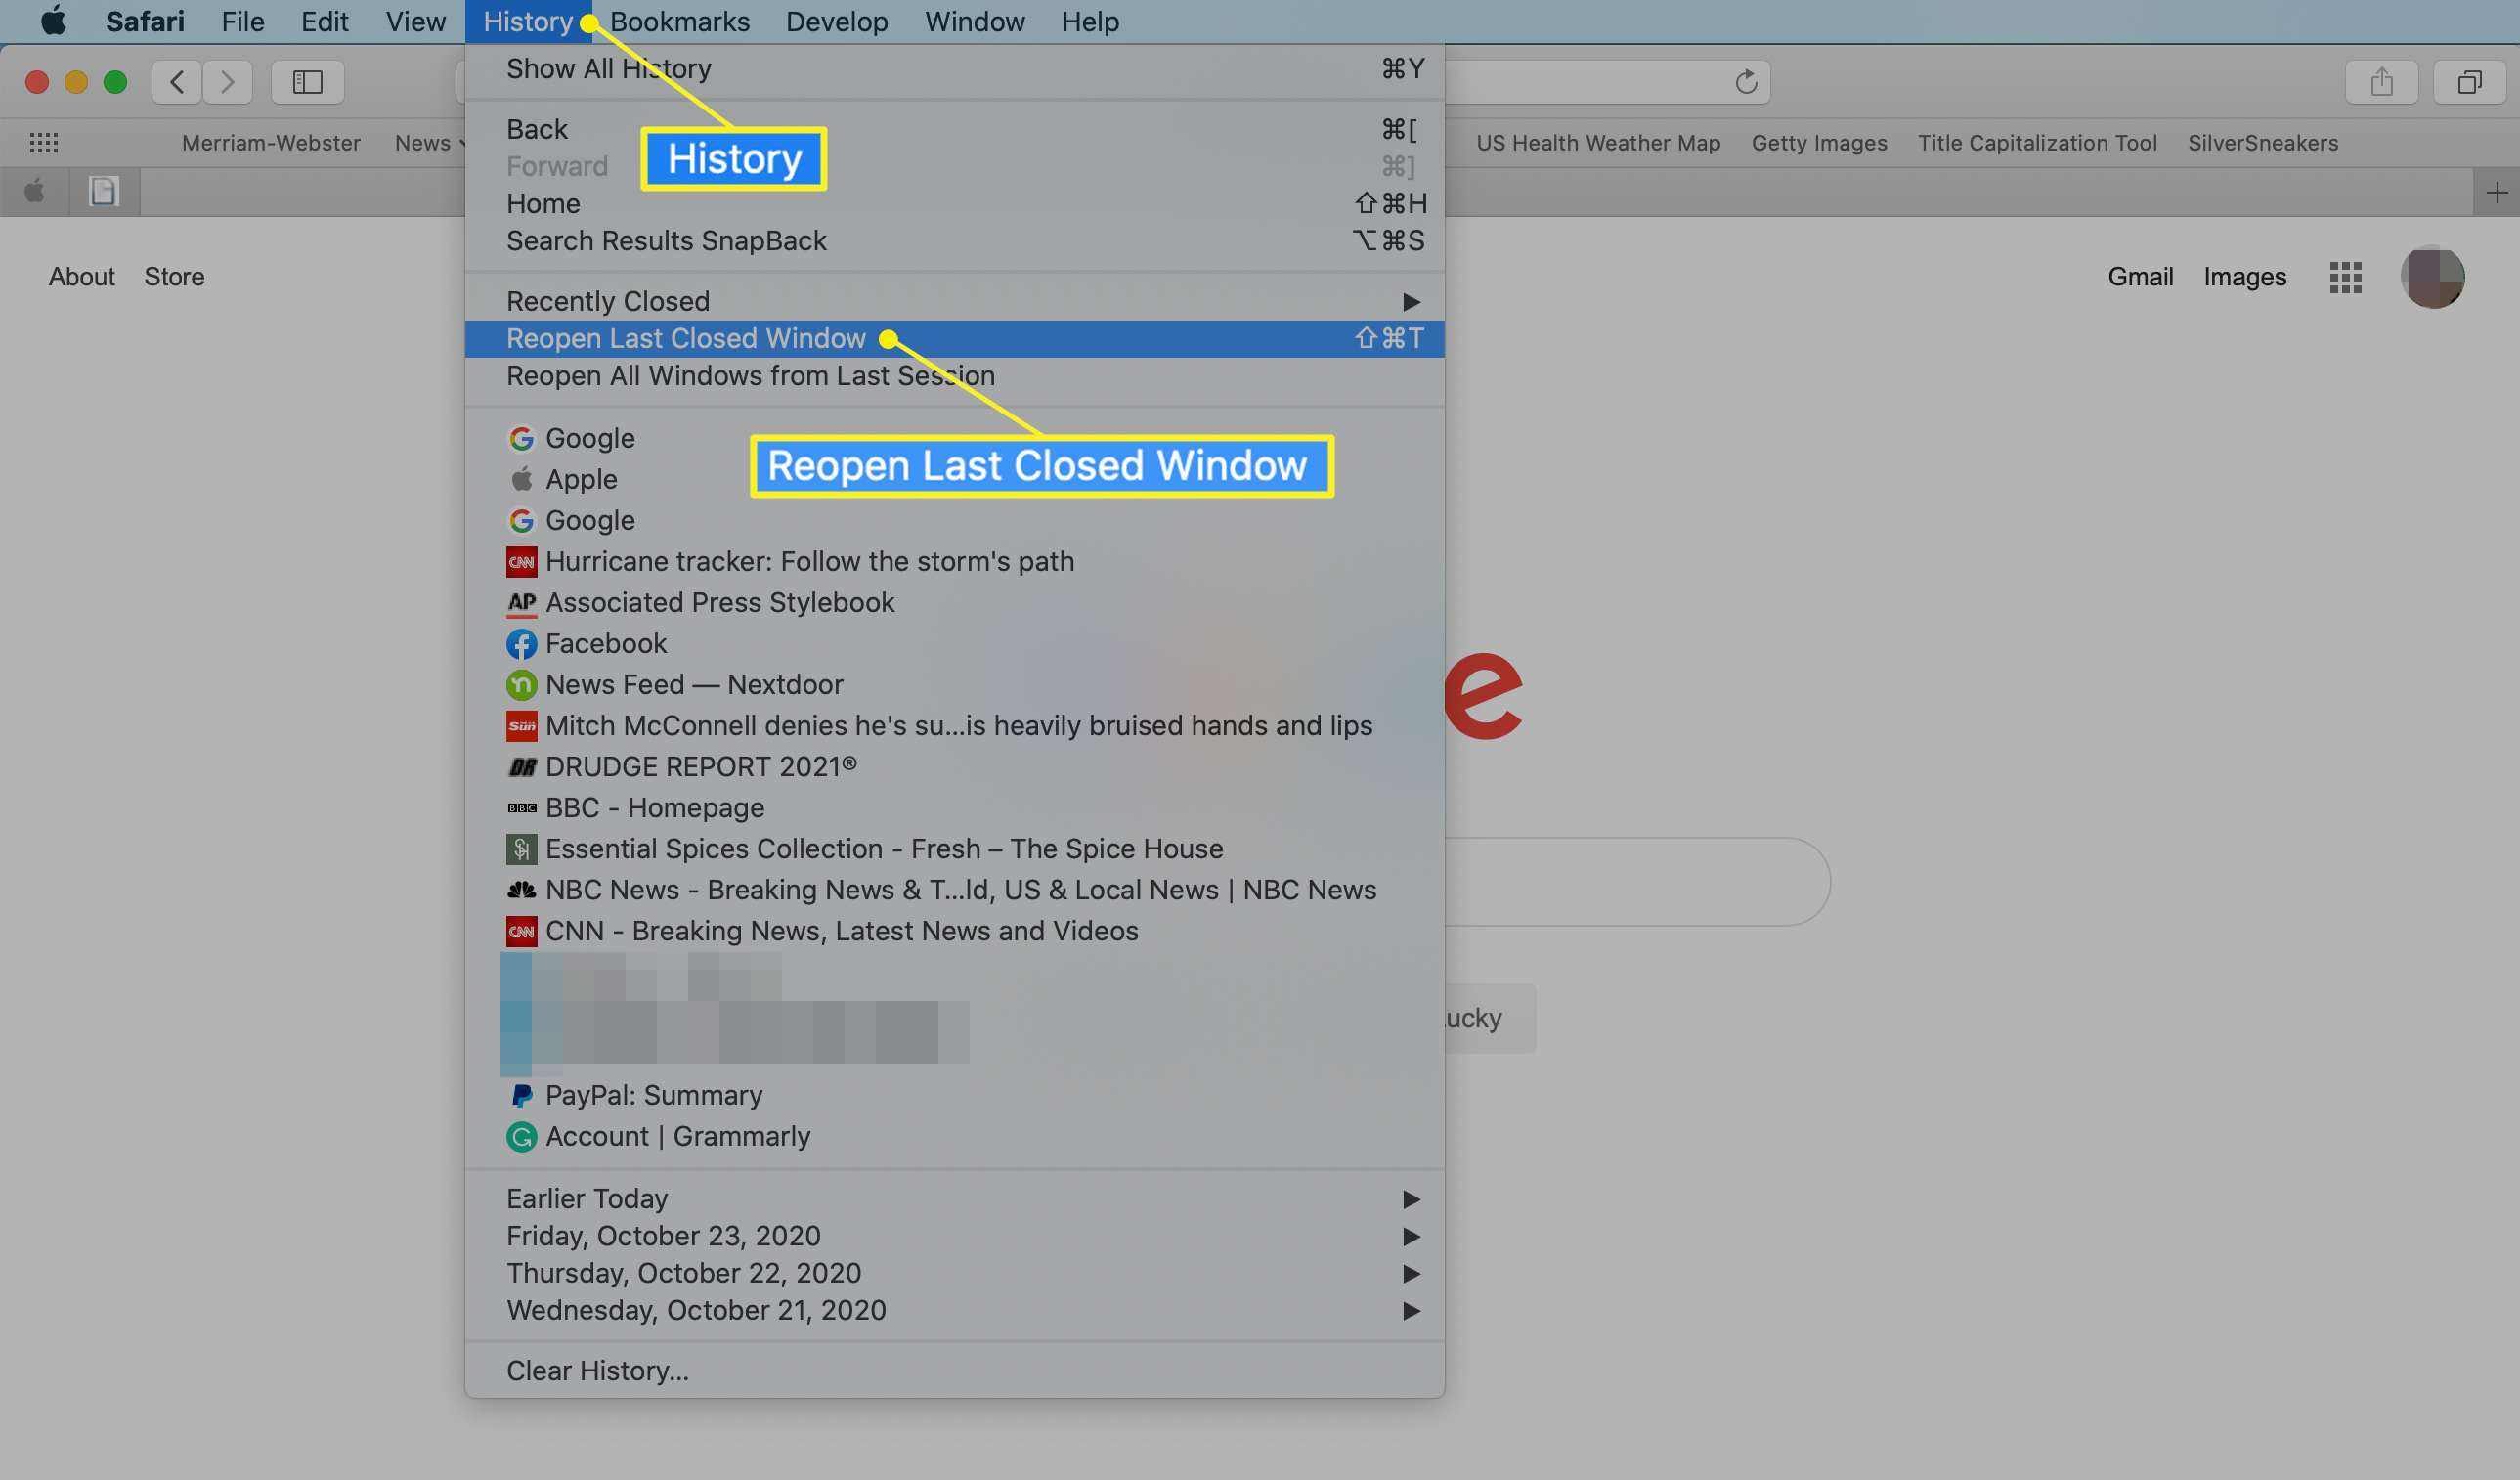 The Safari History enu with Reopen Last Closed Window highlighted